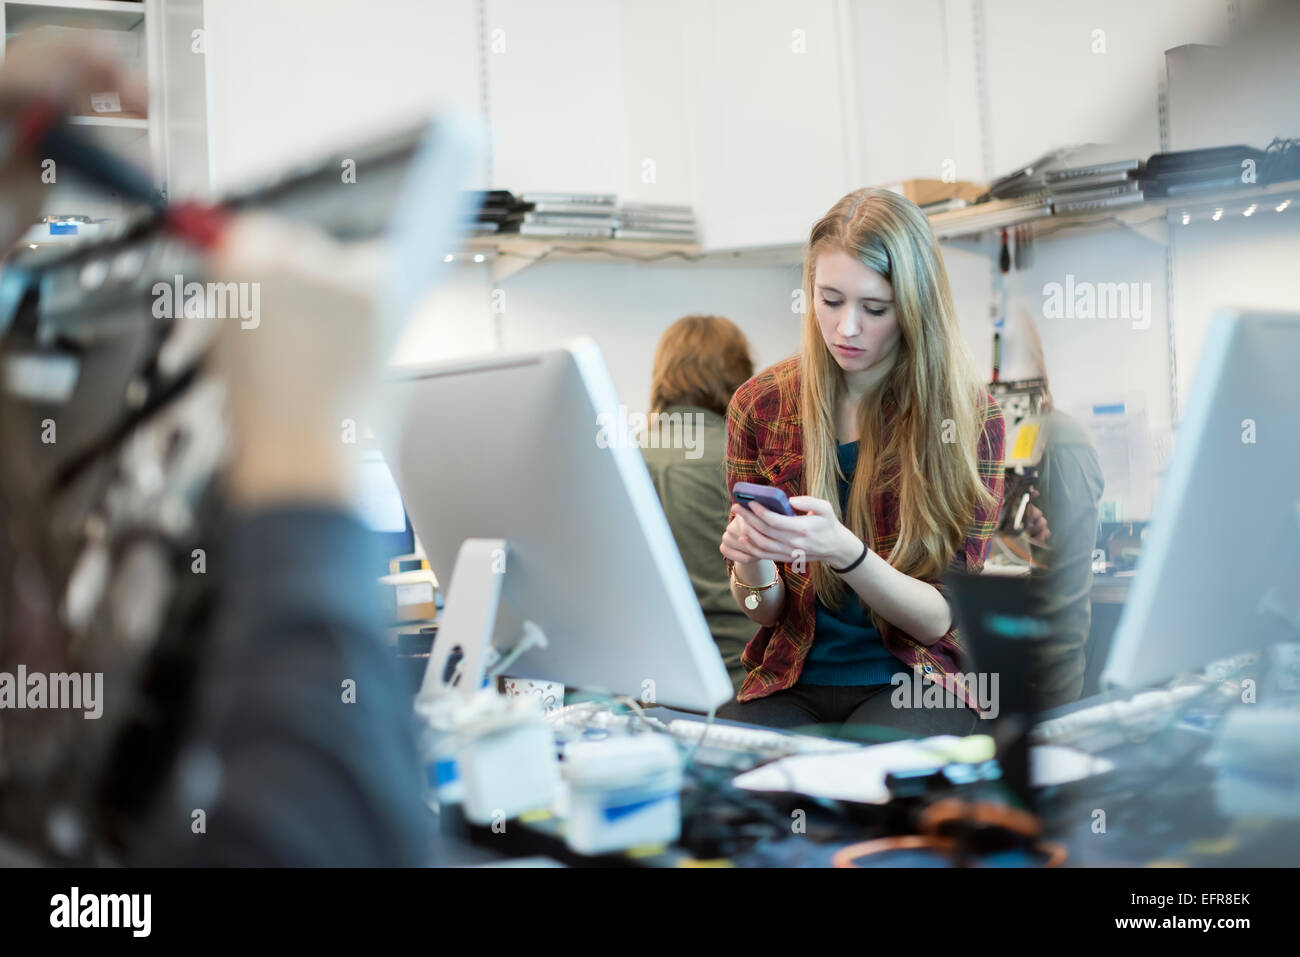 Computer Repair Shop. A woman using a smart phone.  People working on computer repairs. - Stock Image